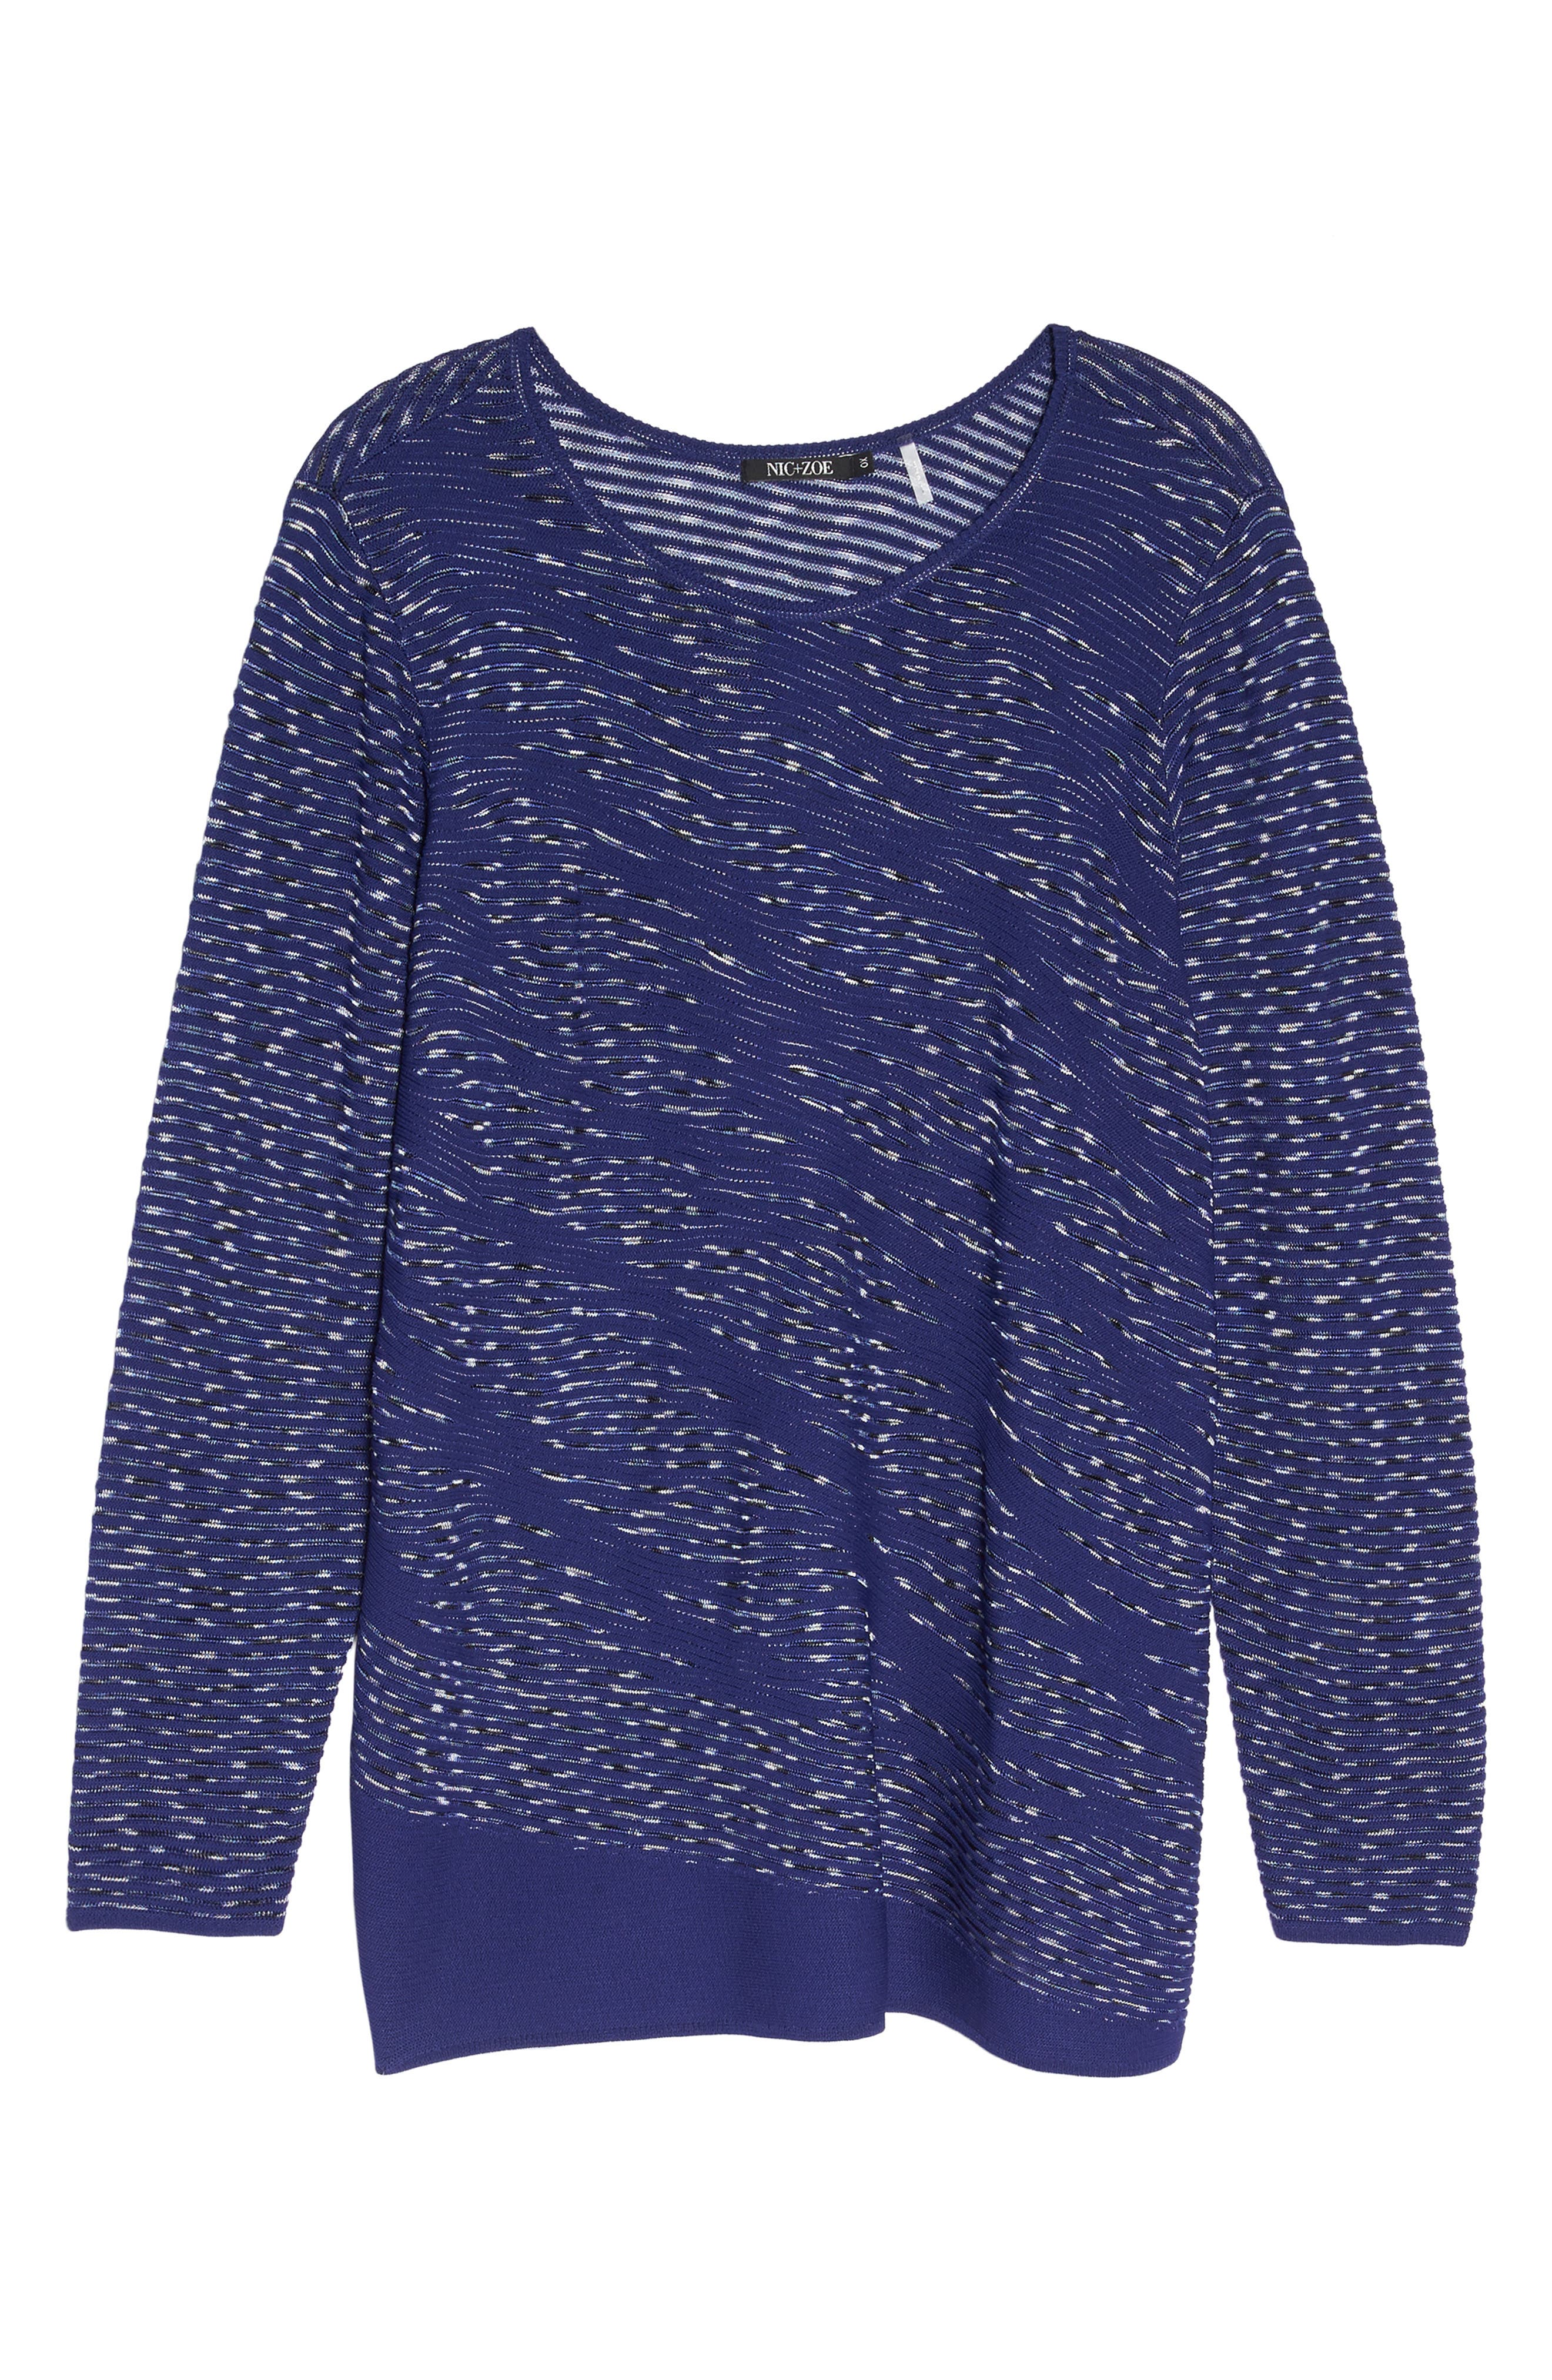 This Is Living Knit Top,                             Alternate thumbnail 6, color,                             ELECTRIC BLUE